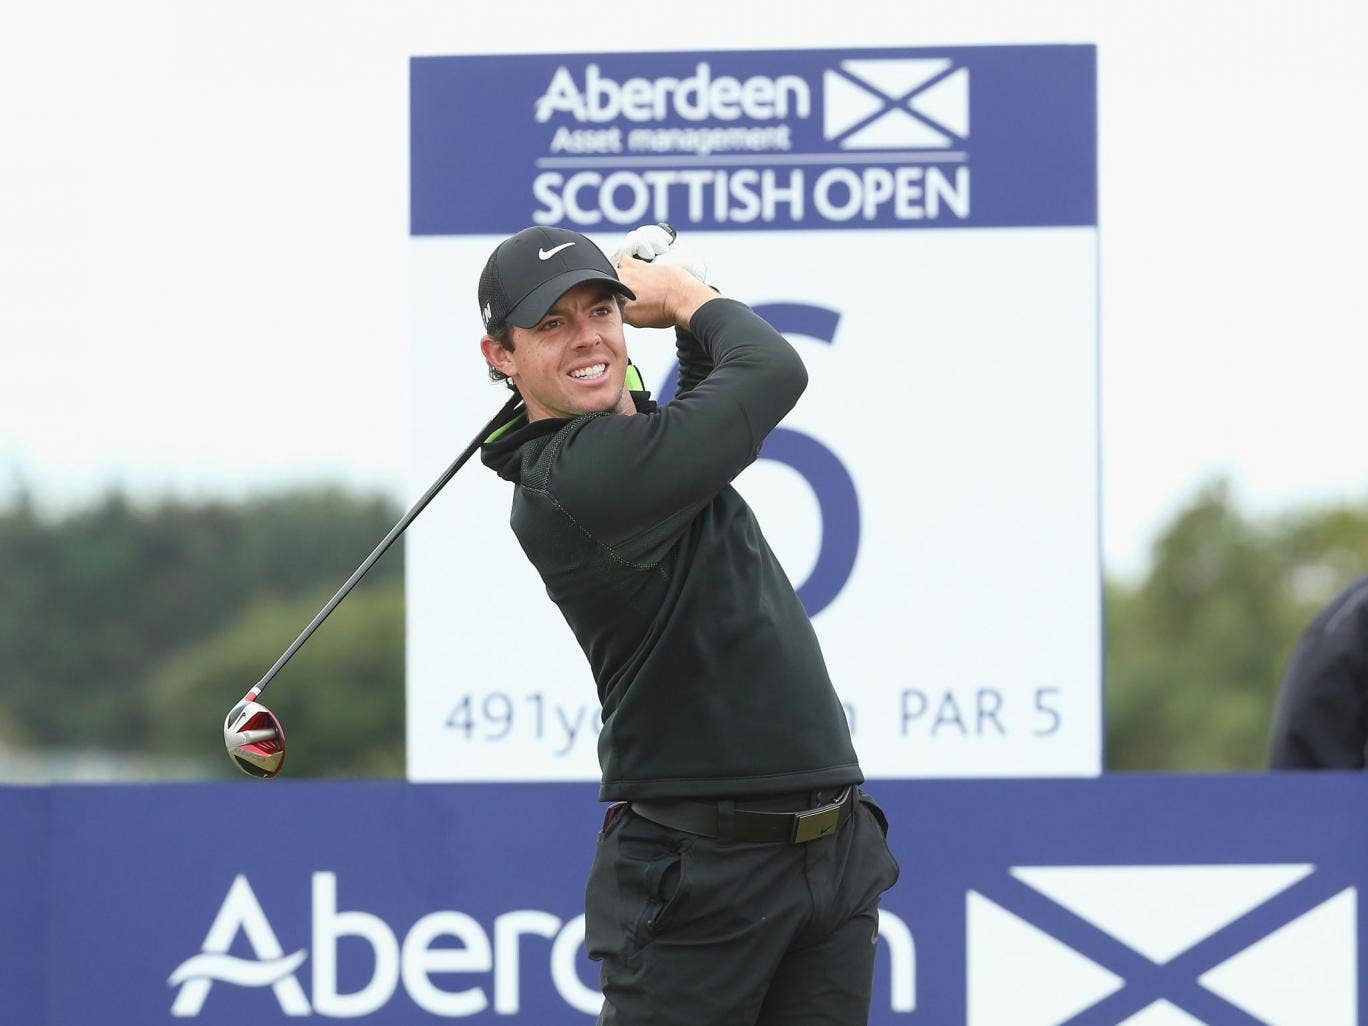 Rory McIlroy tees off in Aberdeen yesterday